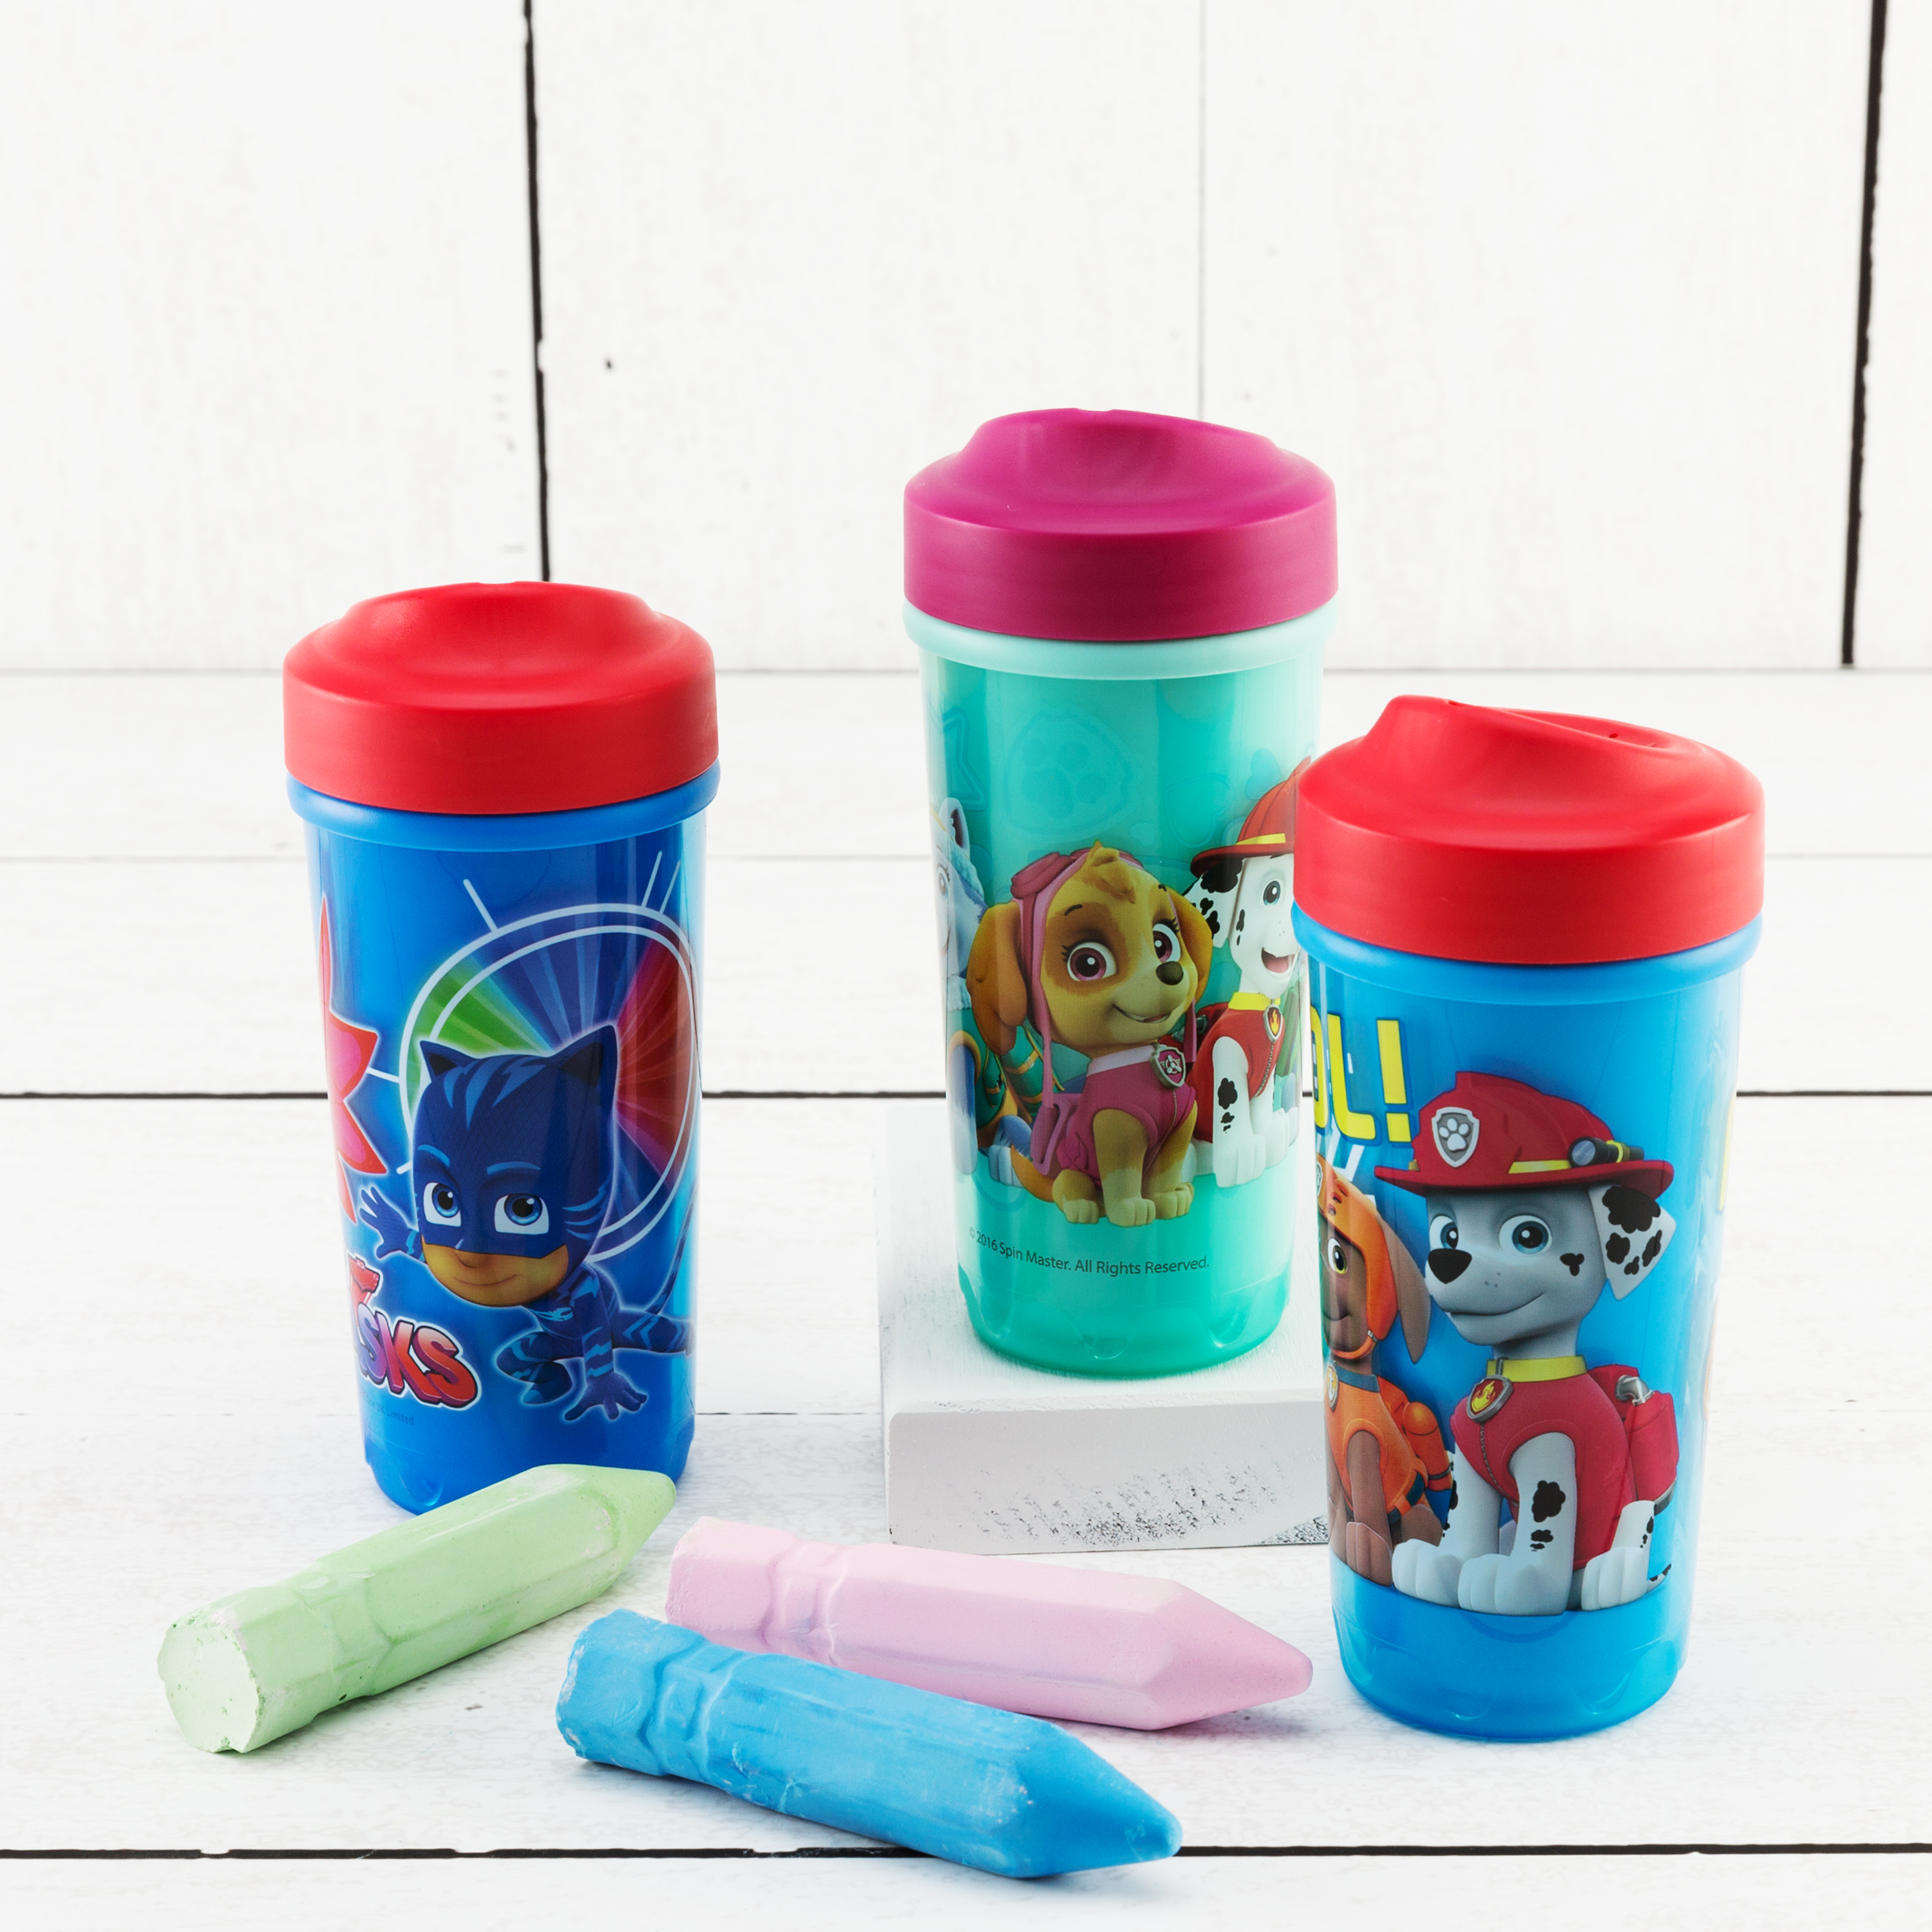 PJ Masks 8.7 ounce Sippy Cup, Catboy, Owlette & Gekko, 2-piece set slideshow image 3